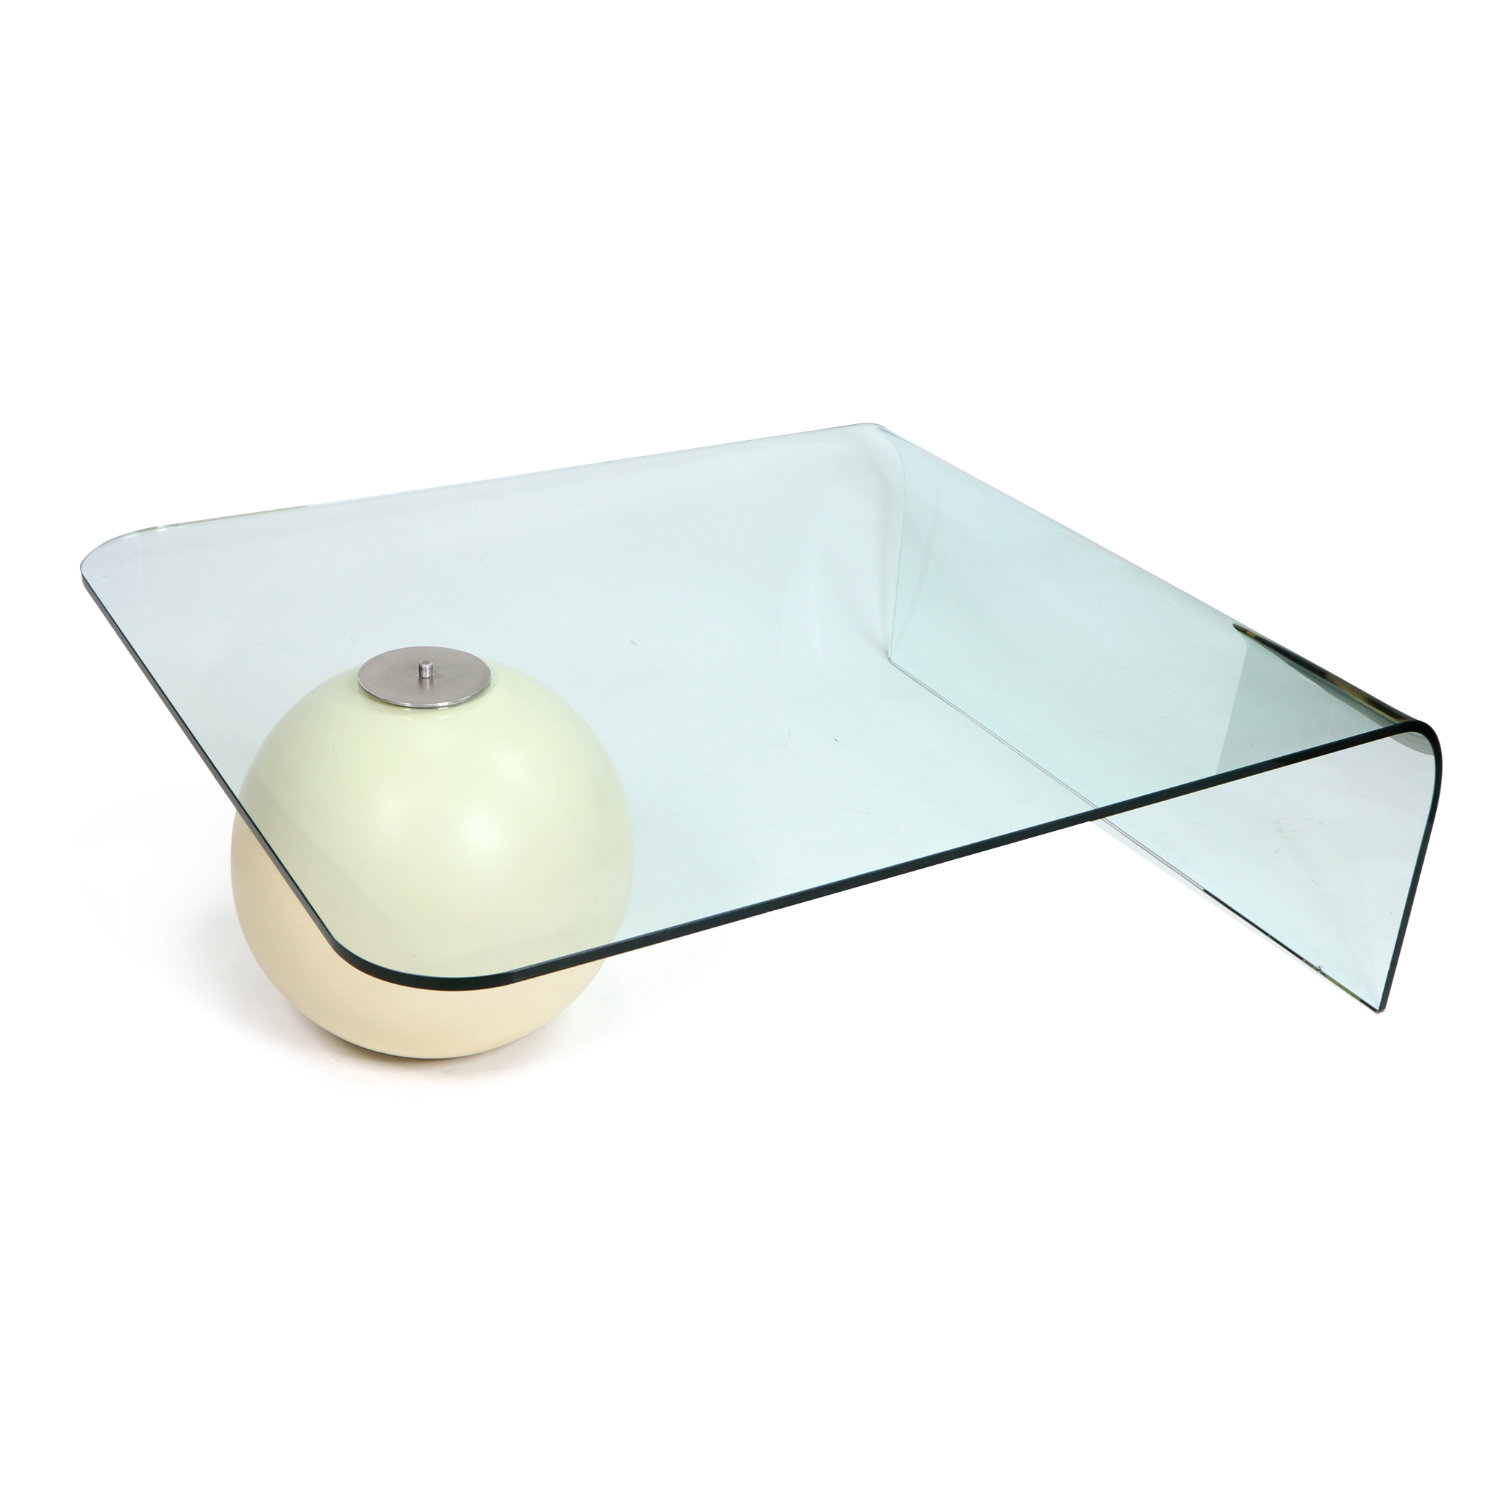 Modern Waterfall Curved Glass Coffee Table Balanced On White Ball Furnish Me Vintage